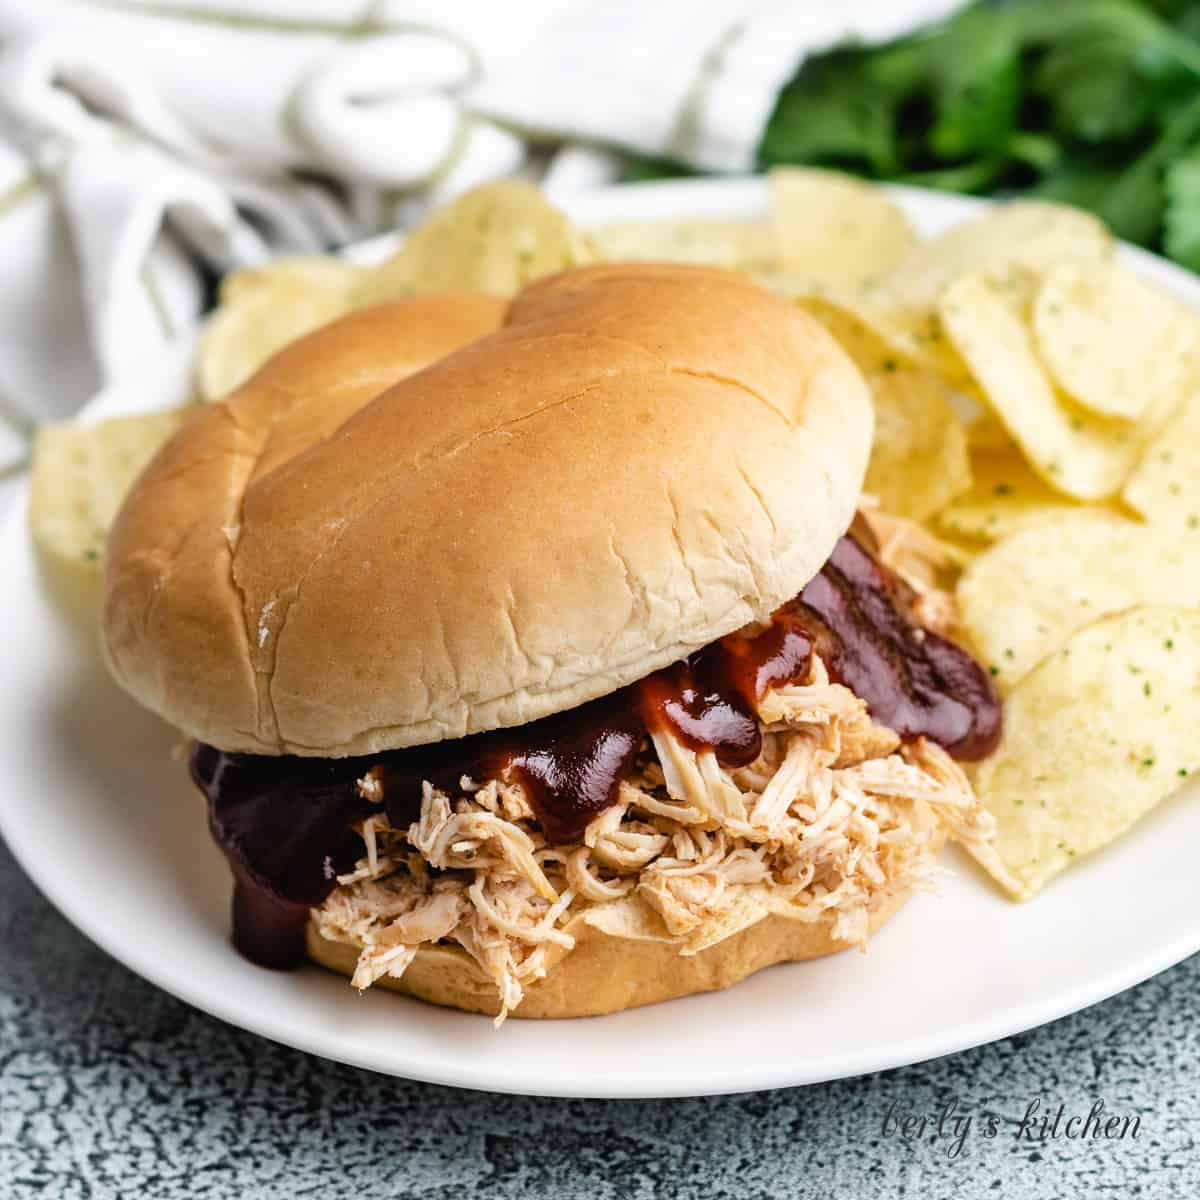 Slow cooker BBQ chicken on a bun with chips.